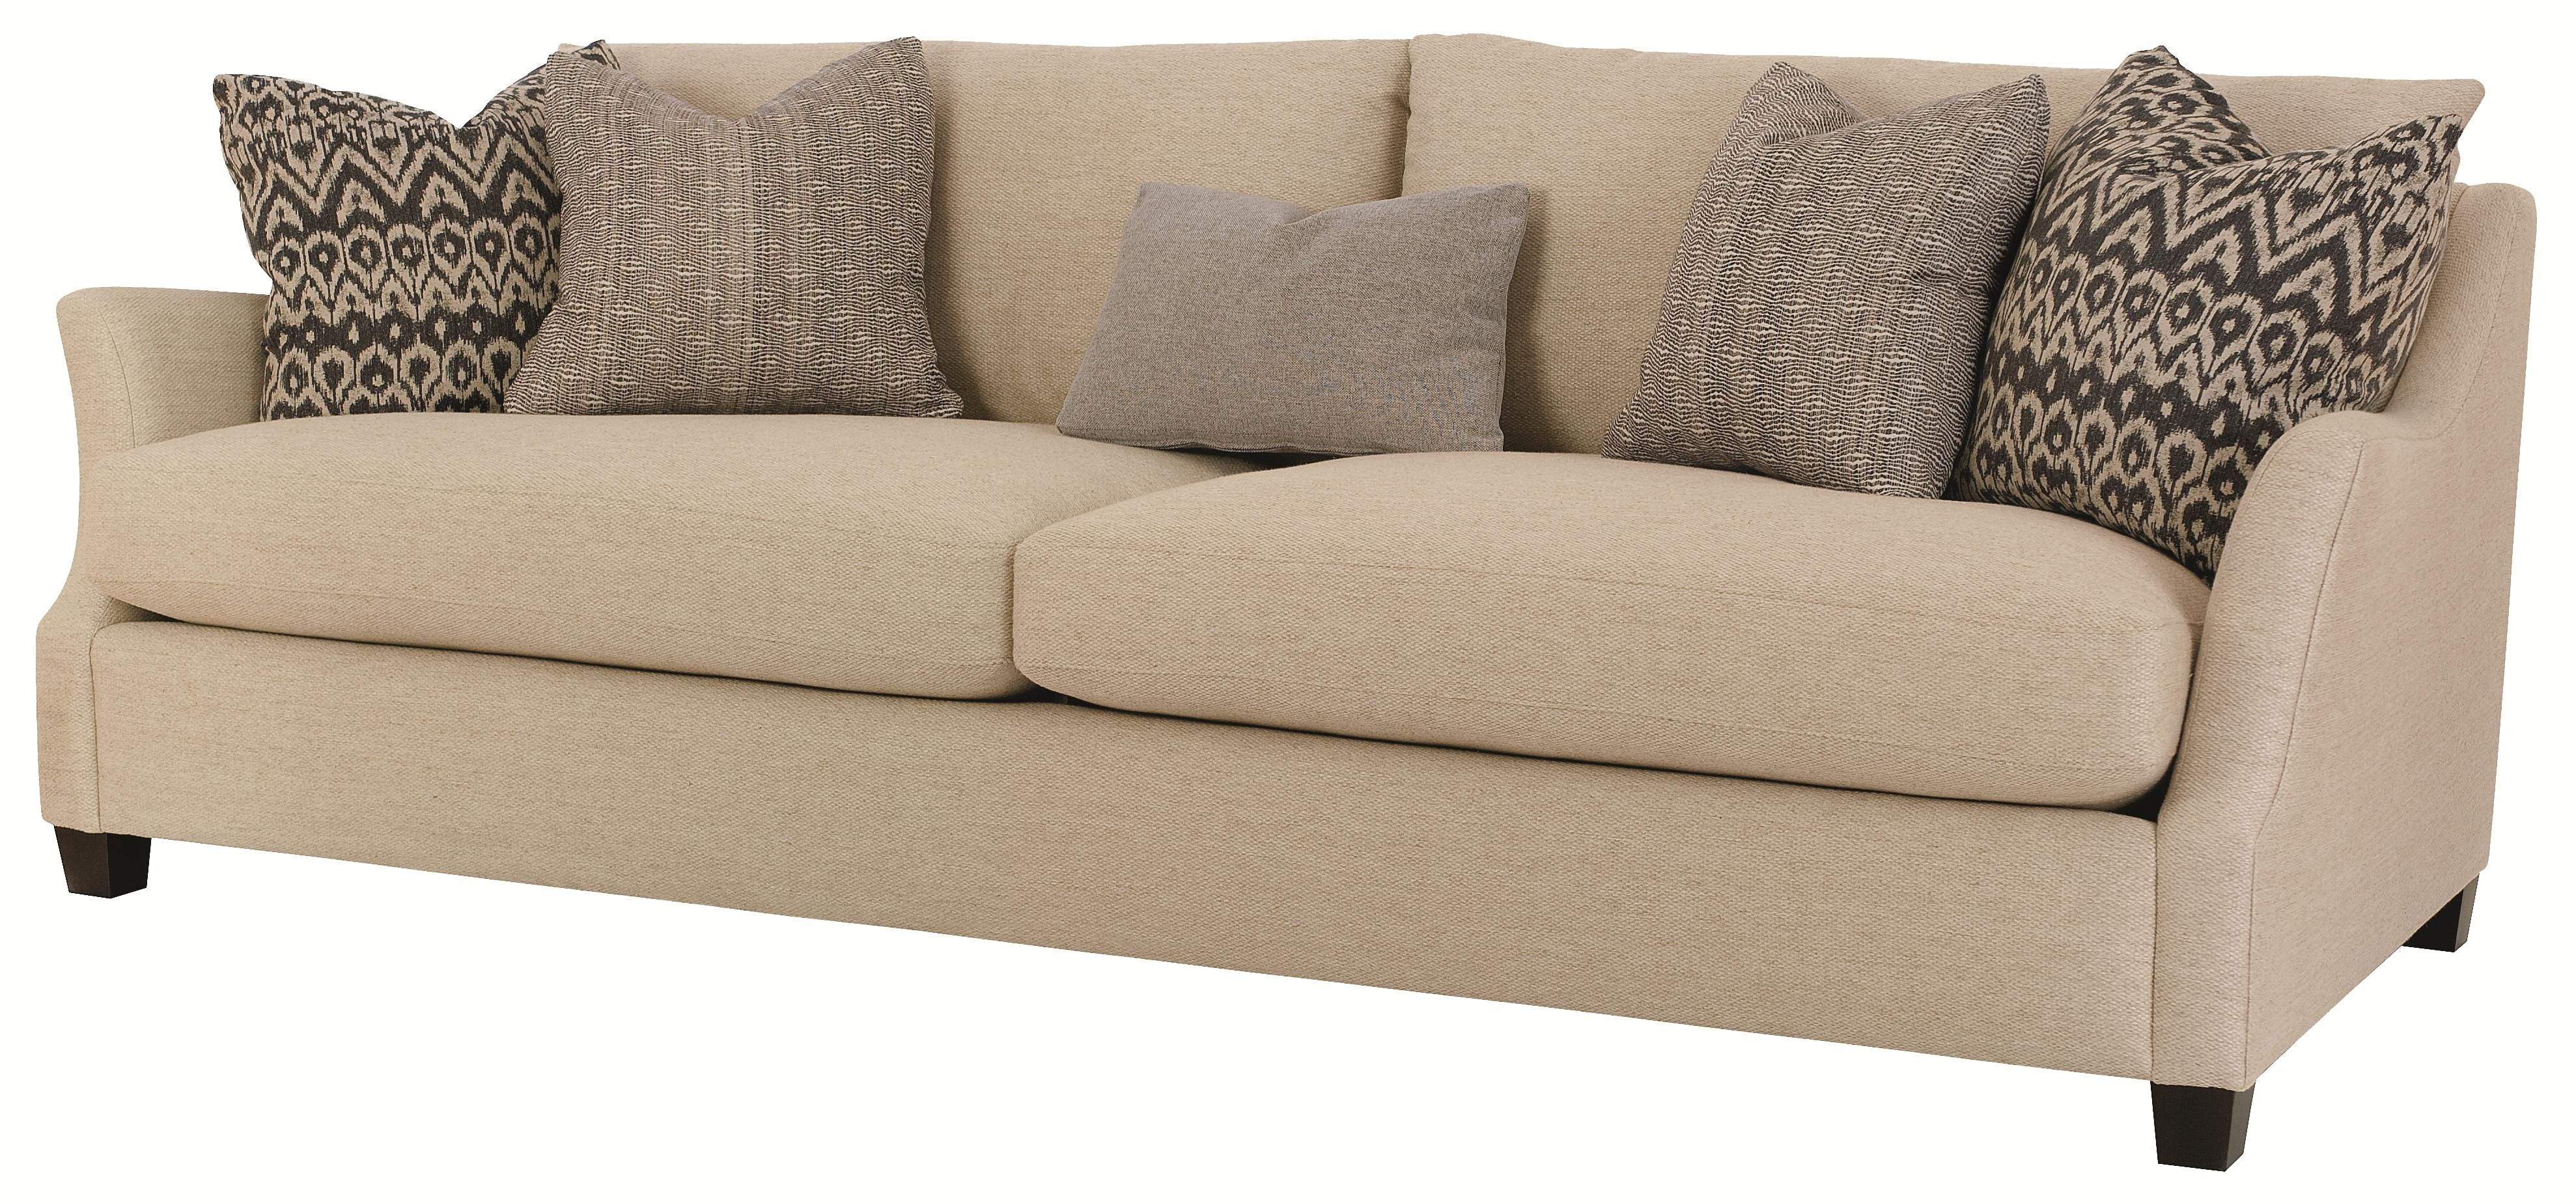 What I Want Long And With Just Two Back Seat Pillows Comes In May Colors Bernhardt